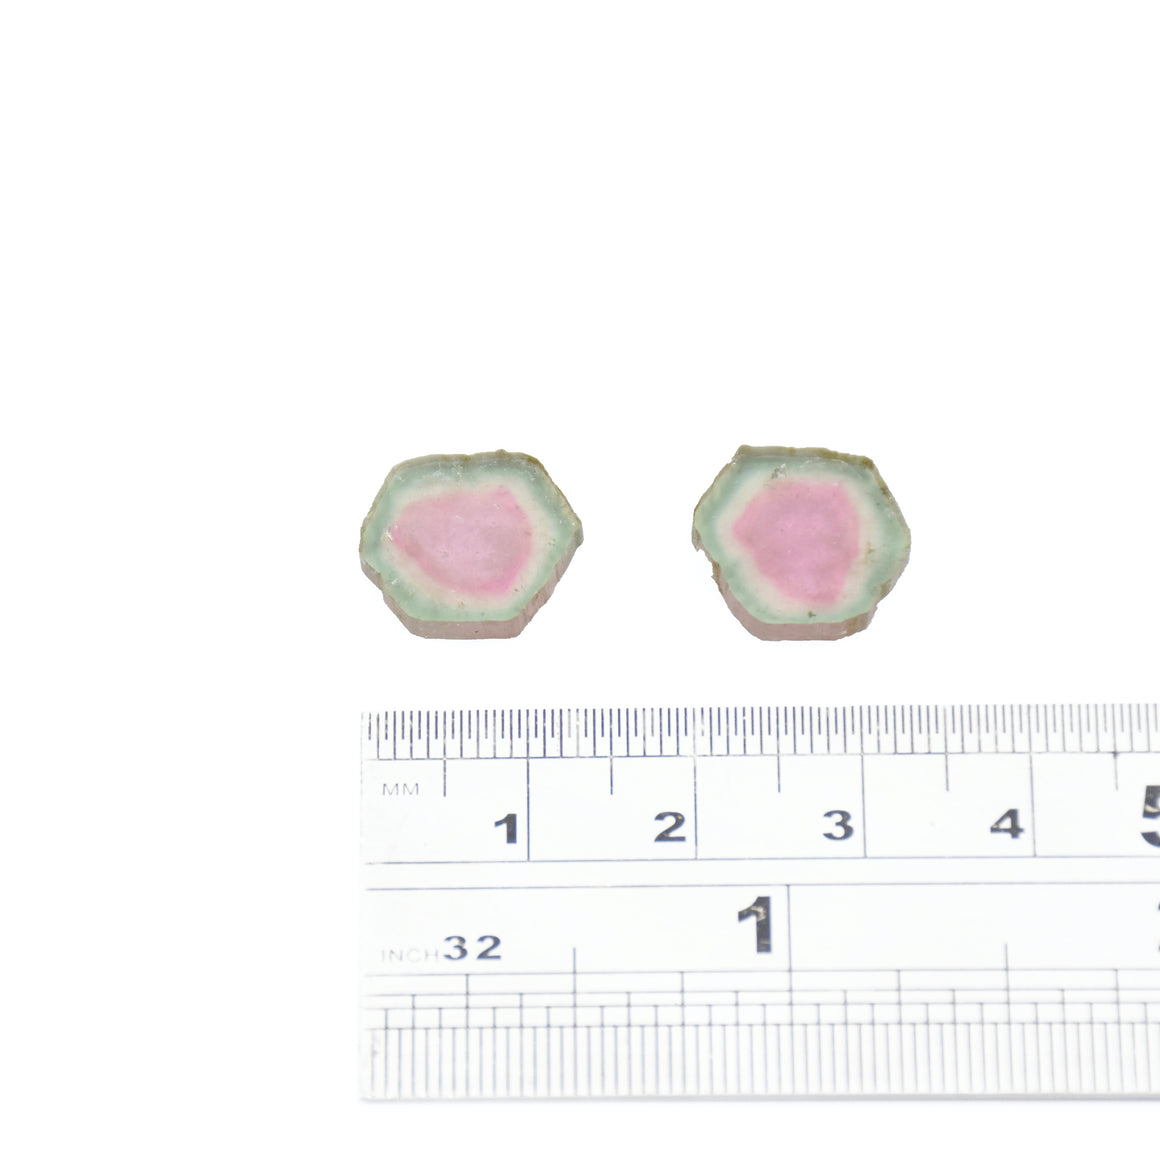 4.85ct Light green edge, light pink core